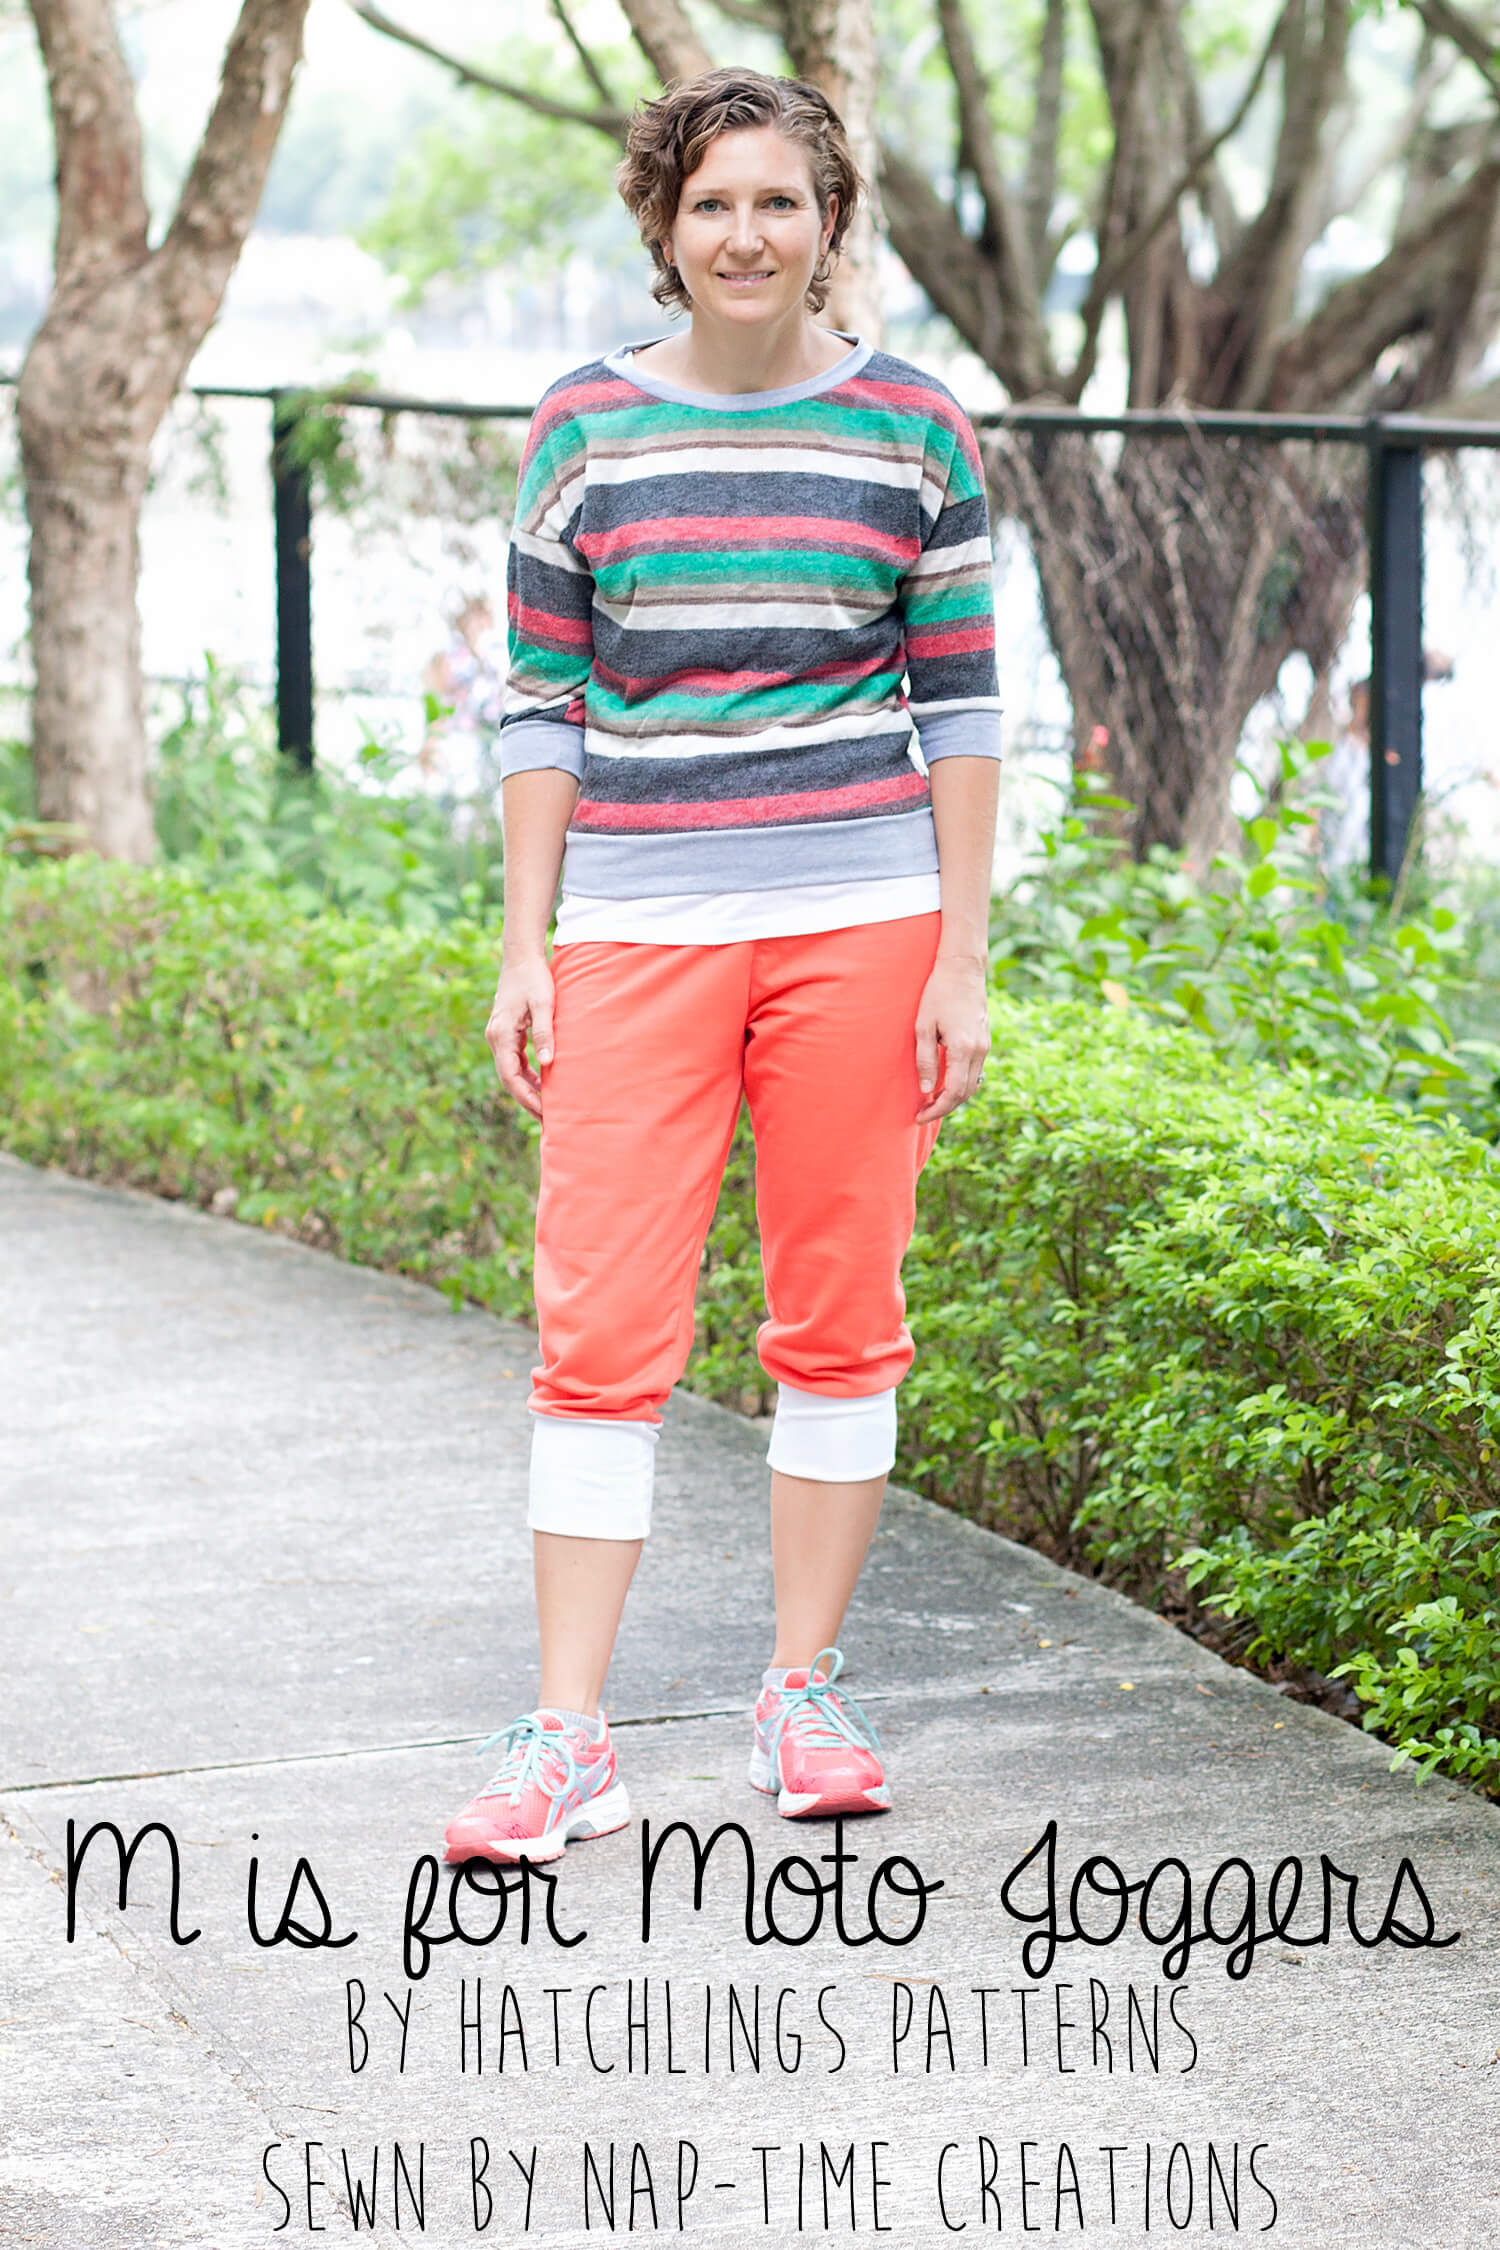 M is for Moto Joggers by Hatchlins patterns Sewn by Nap-Time Creations